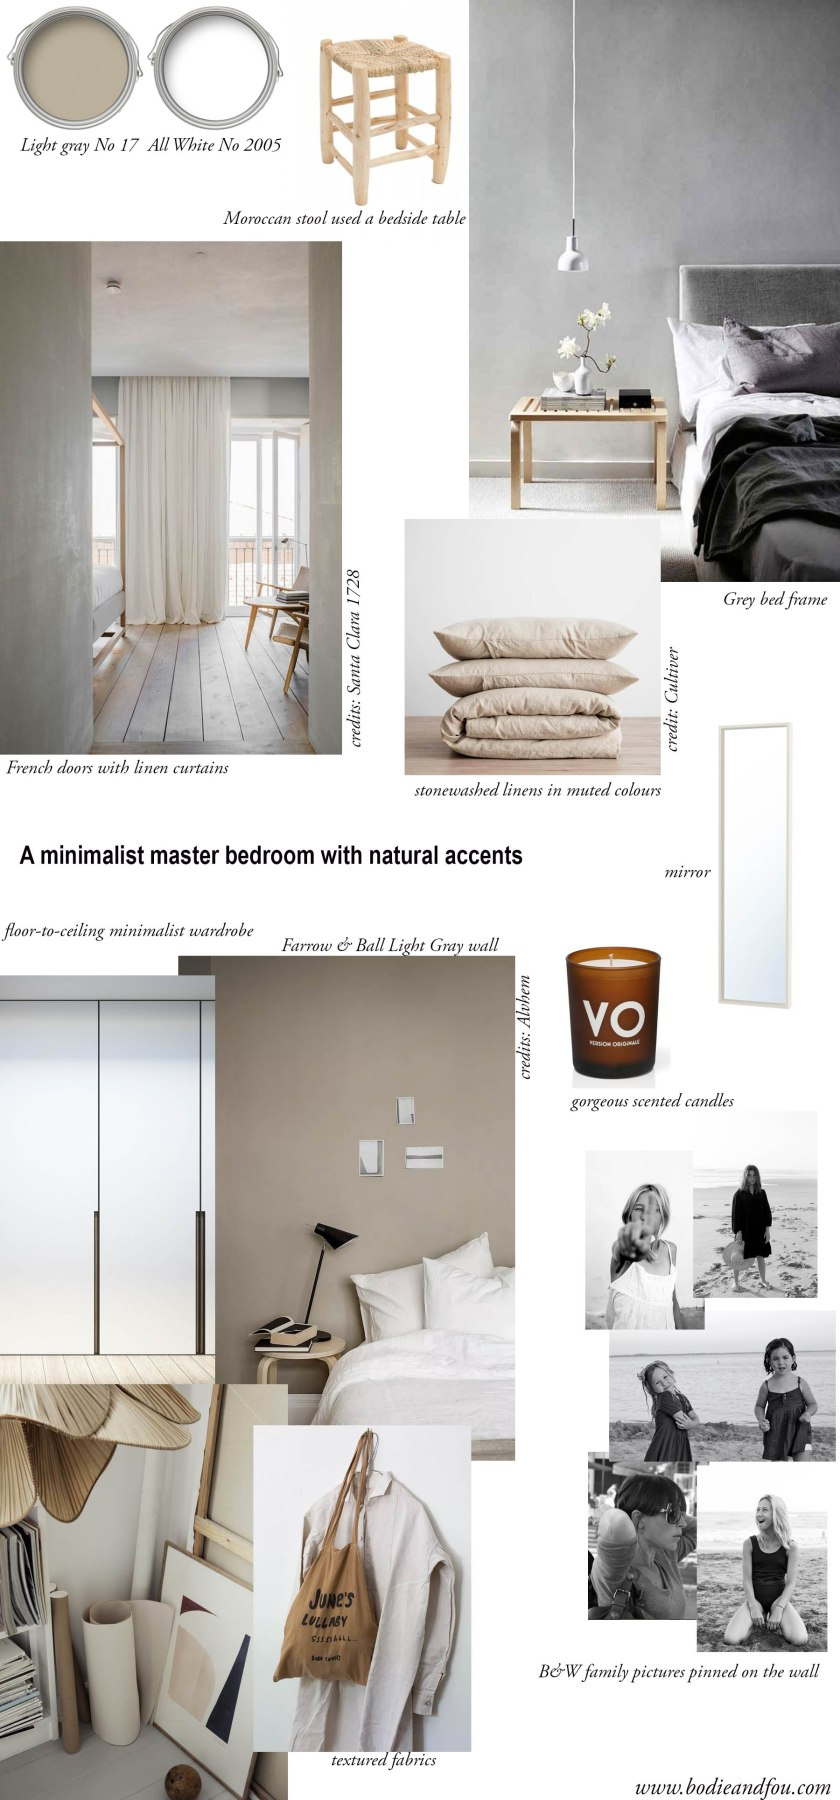 How to add warmth & comfort to a master bedroom: moodboard